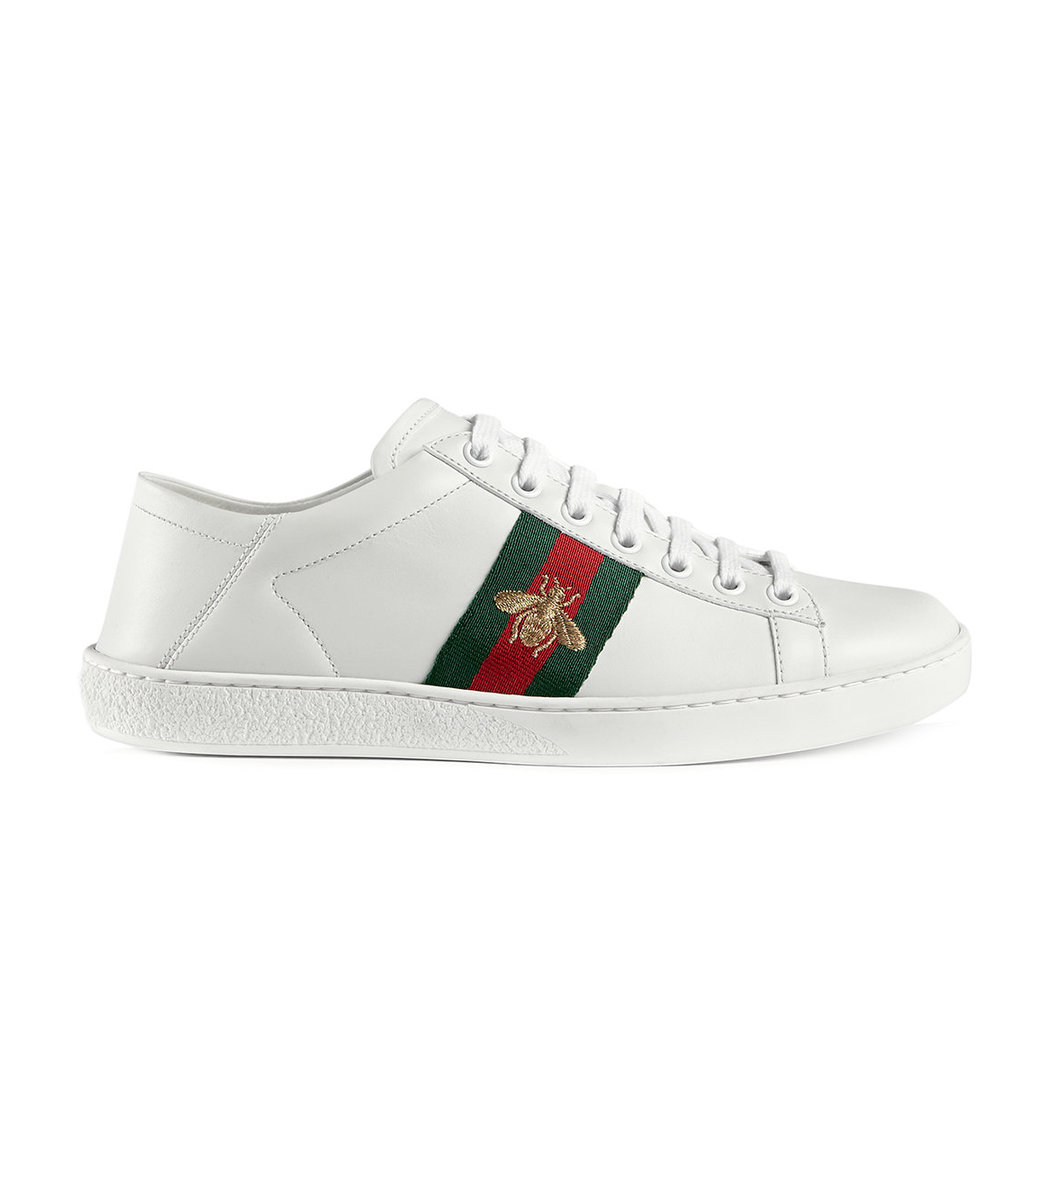 47222b25bc3 Gucci Ace Embroidered Leather Collapsible-Heel Sneakers In White